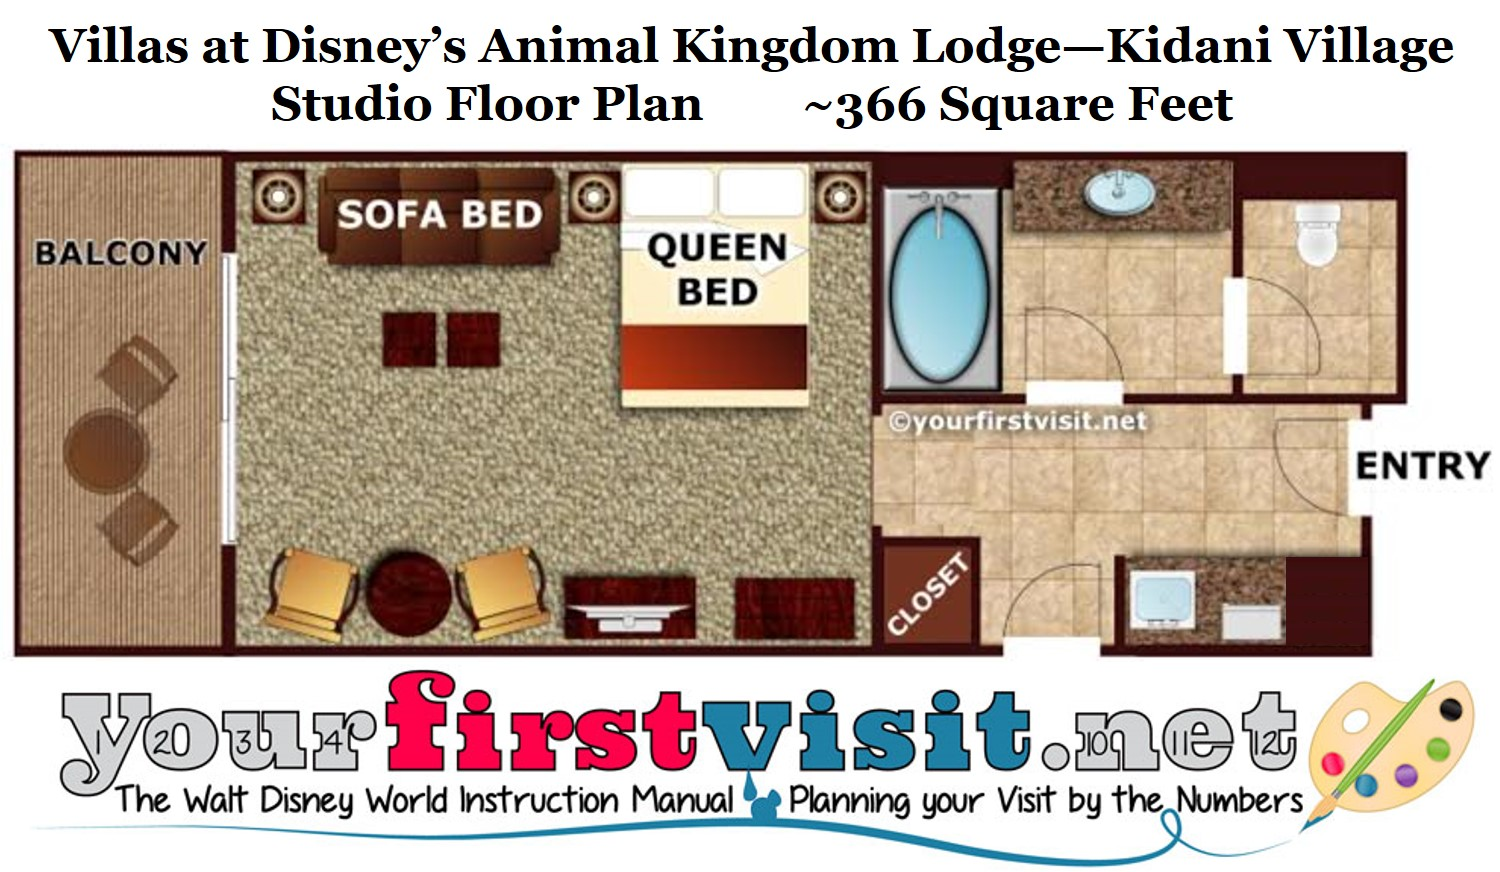 refurbed-kidani-village-studio-floor-plan-from-yourfirstvisit-net